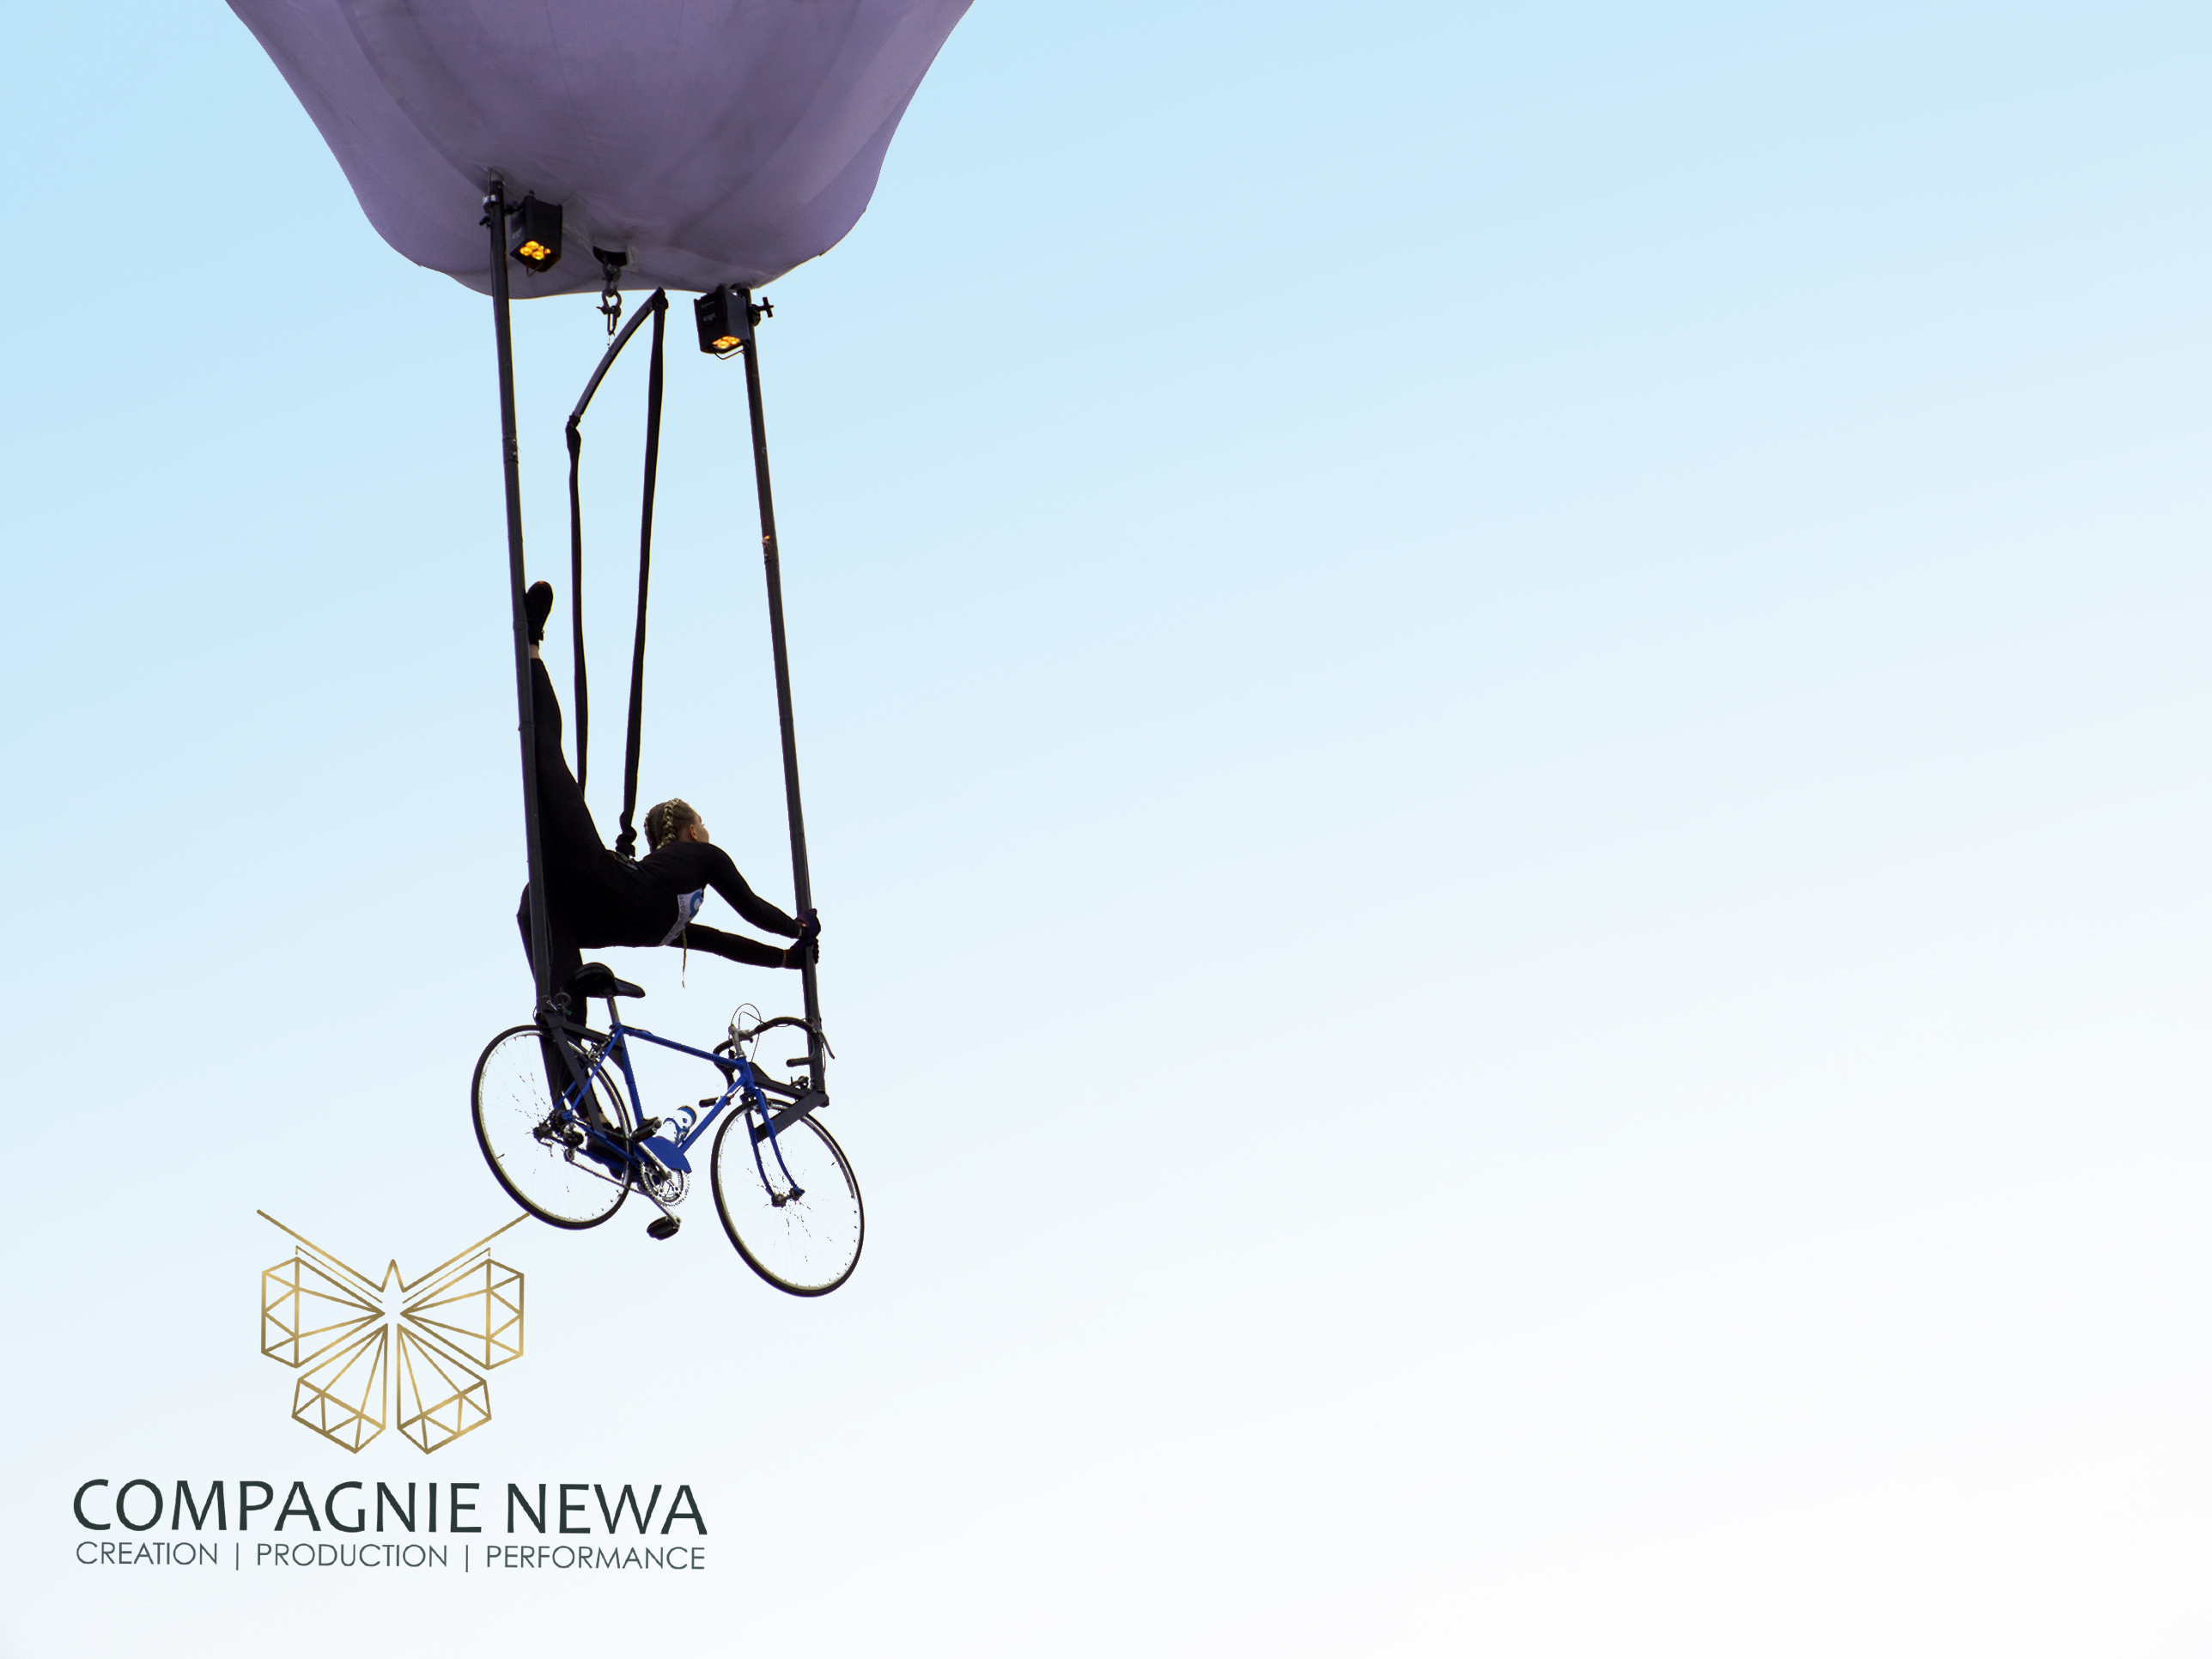 Compagnie_NEWA_outdoor_aerial_balloon